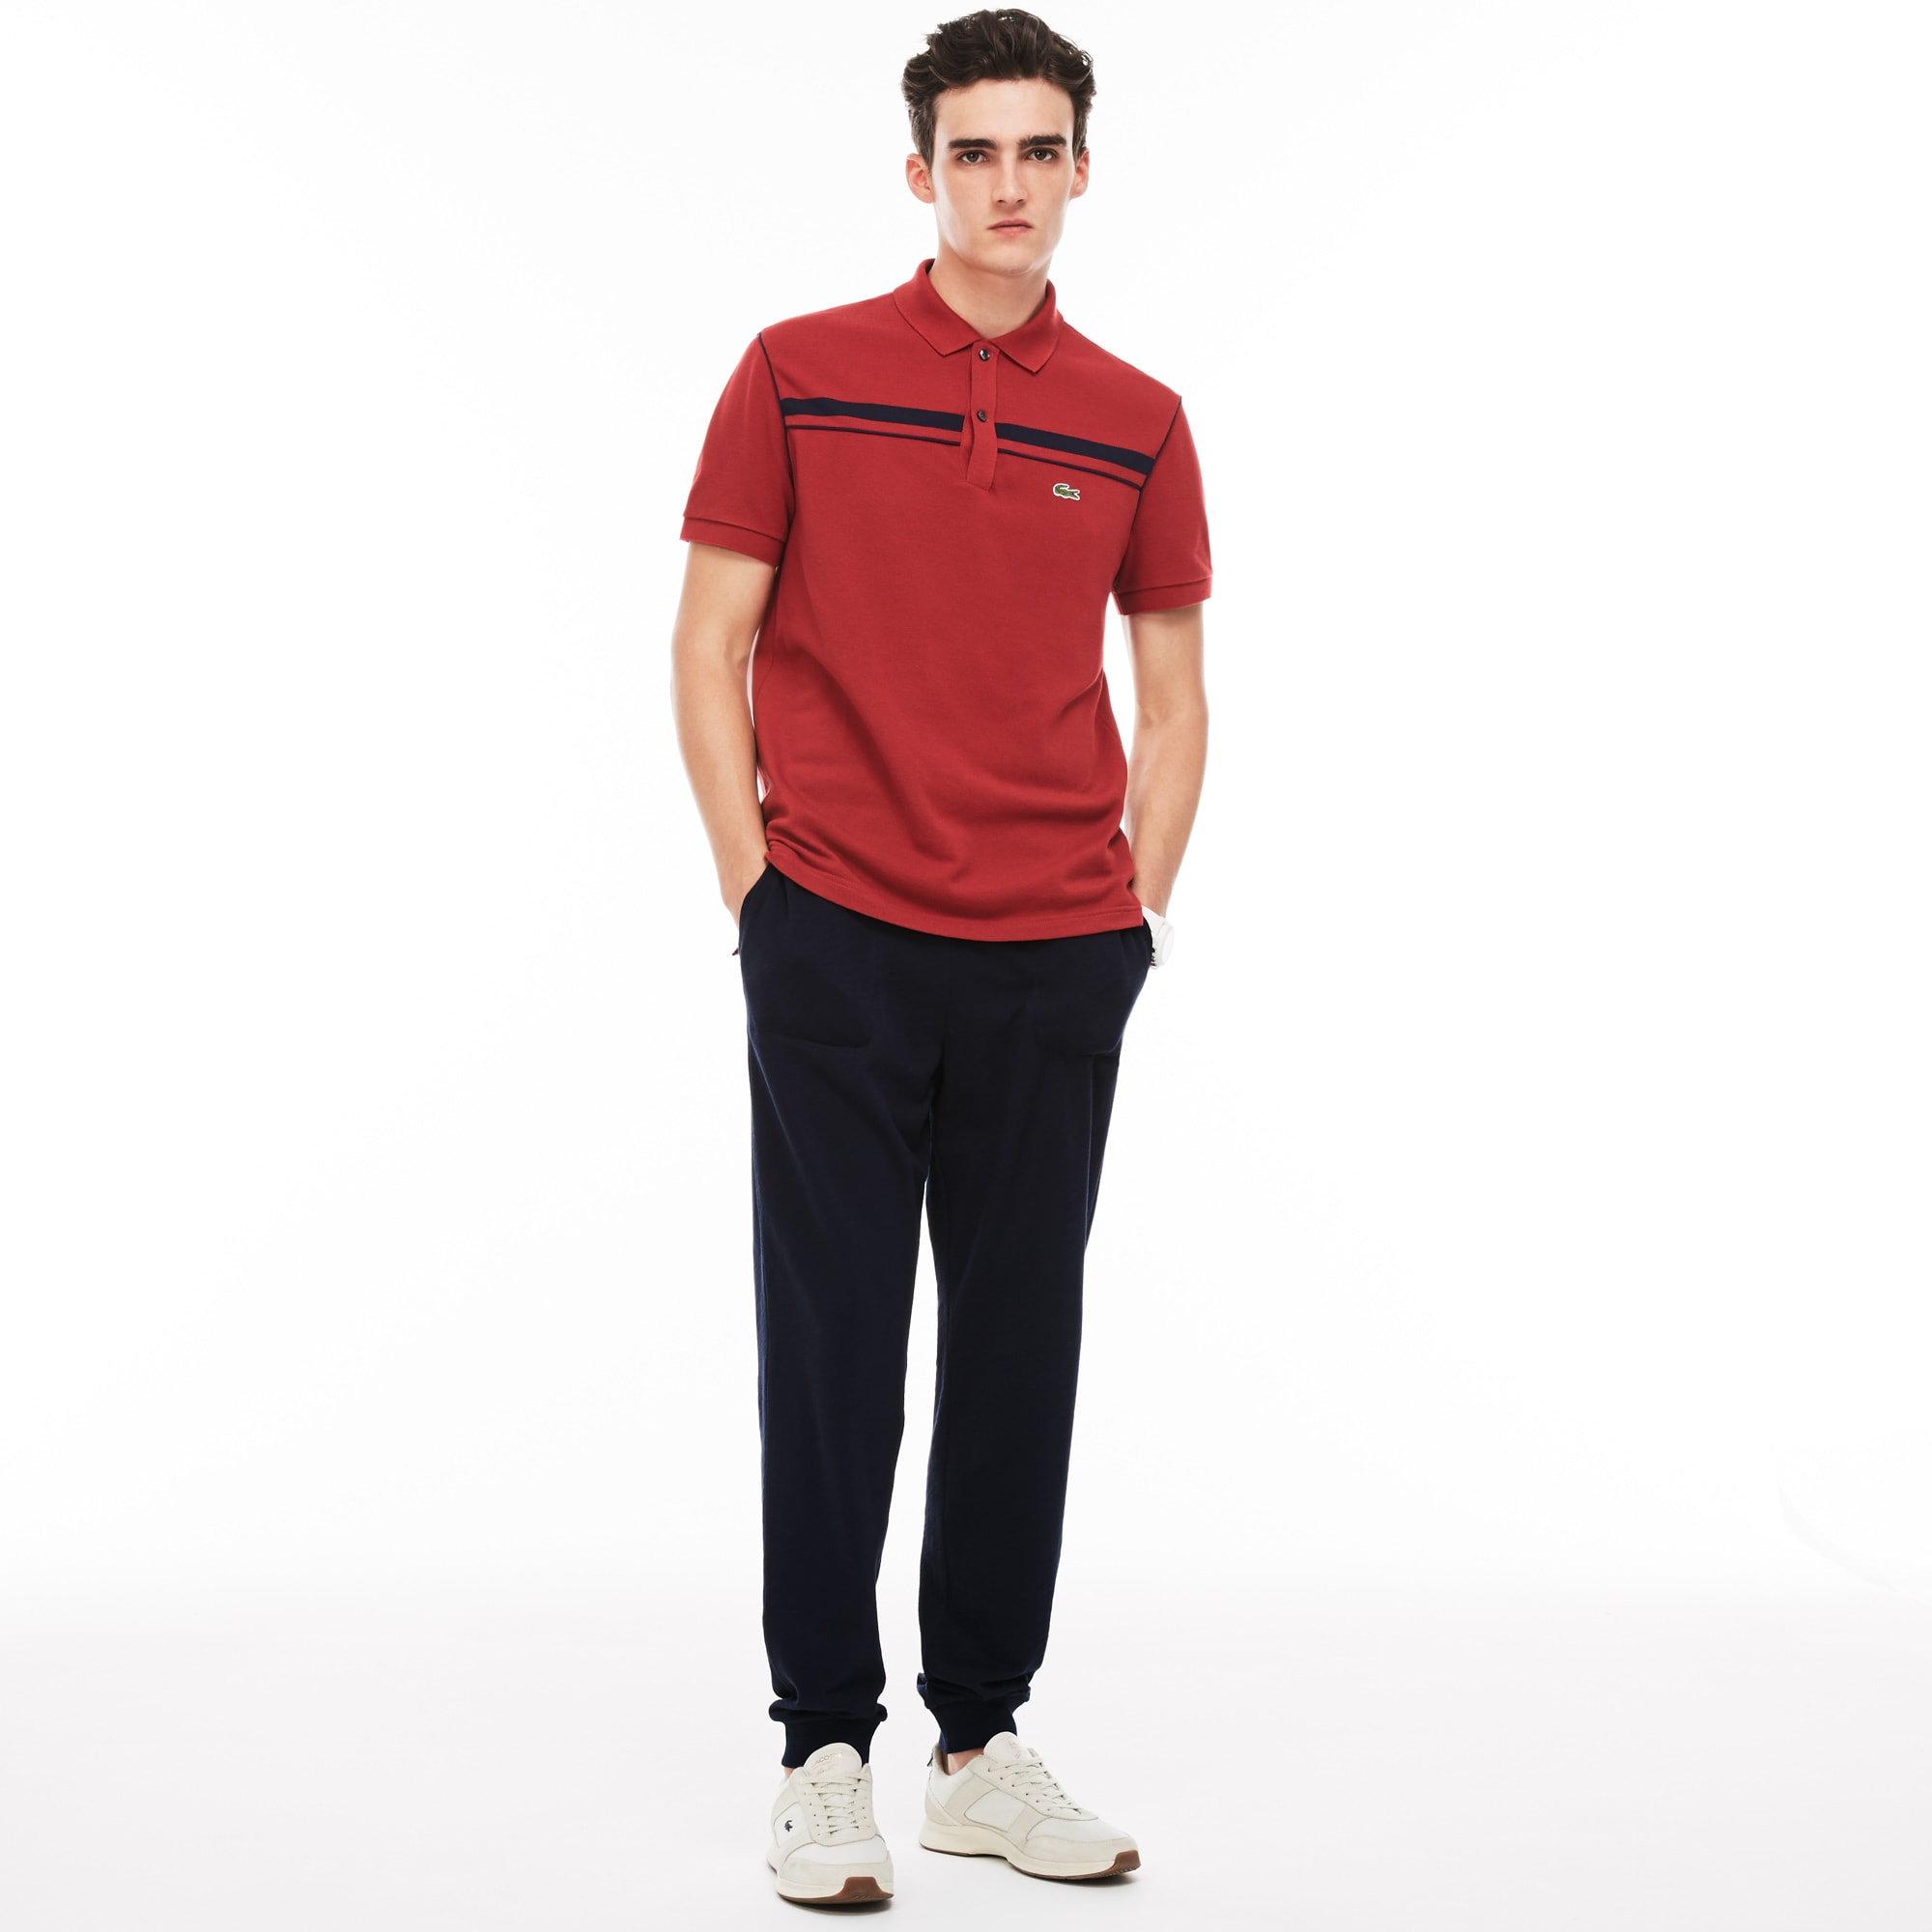 Lacoste MOTION-joggingbroek heren urban katoenfleece